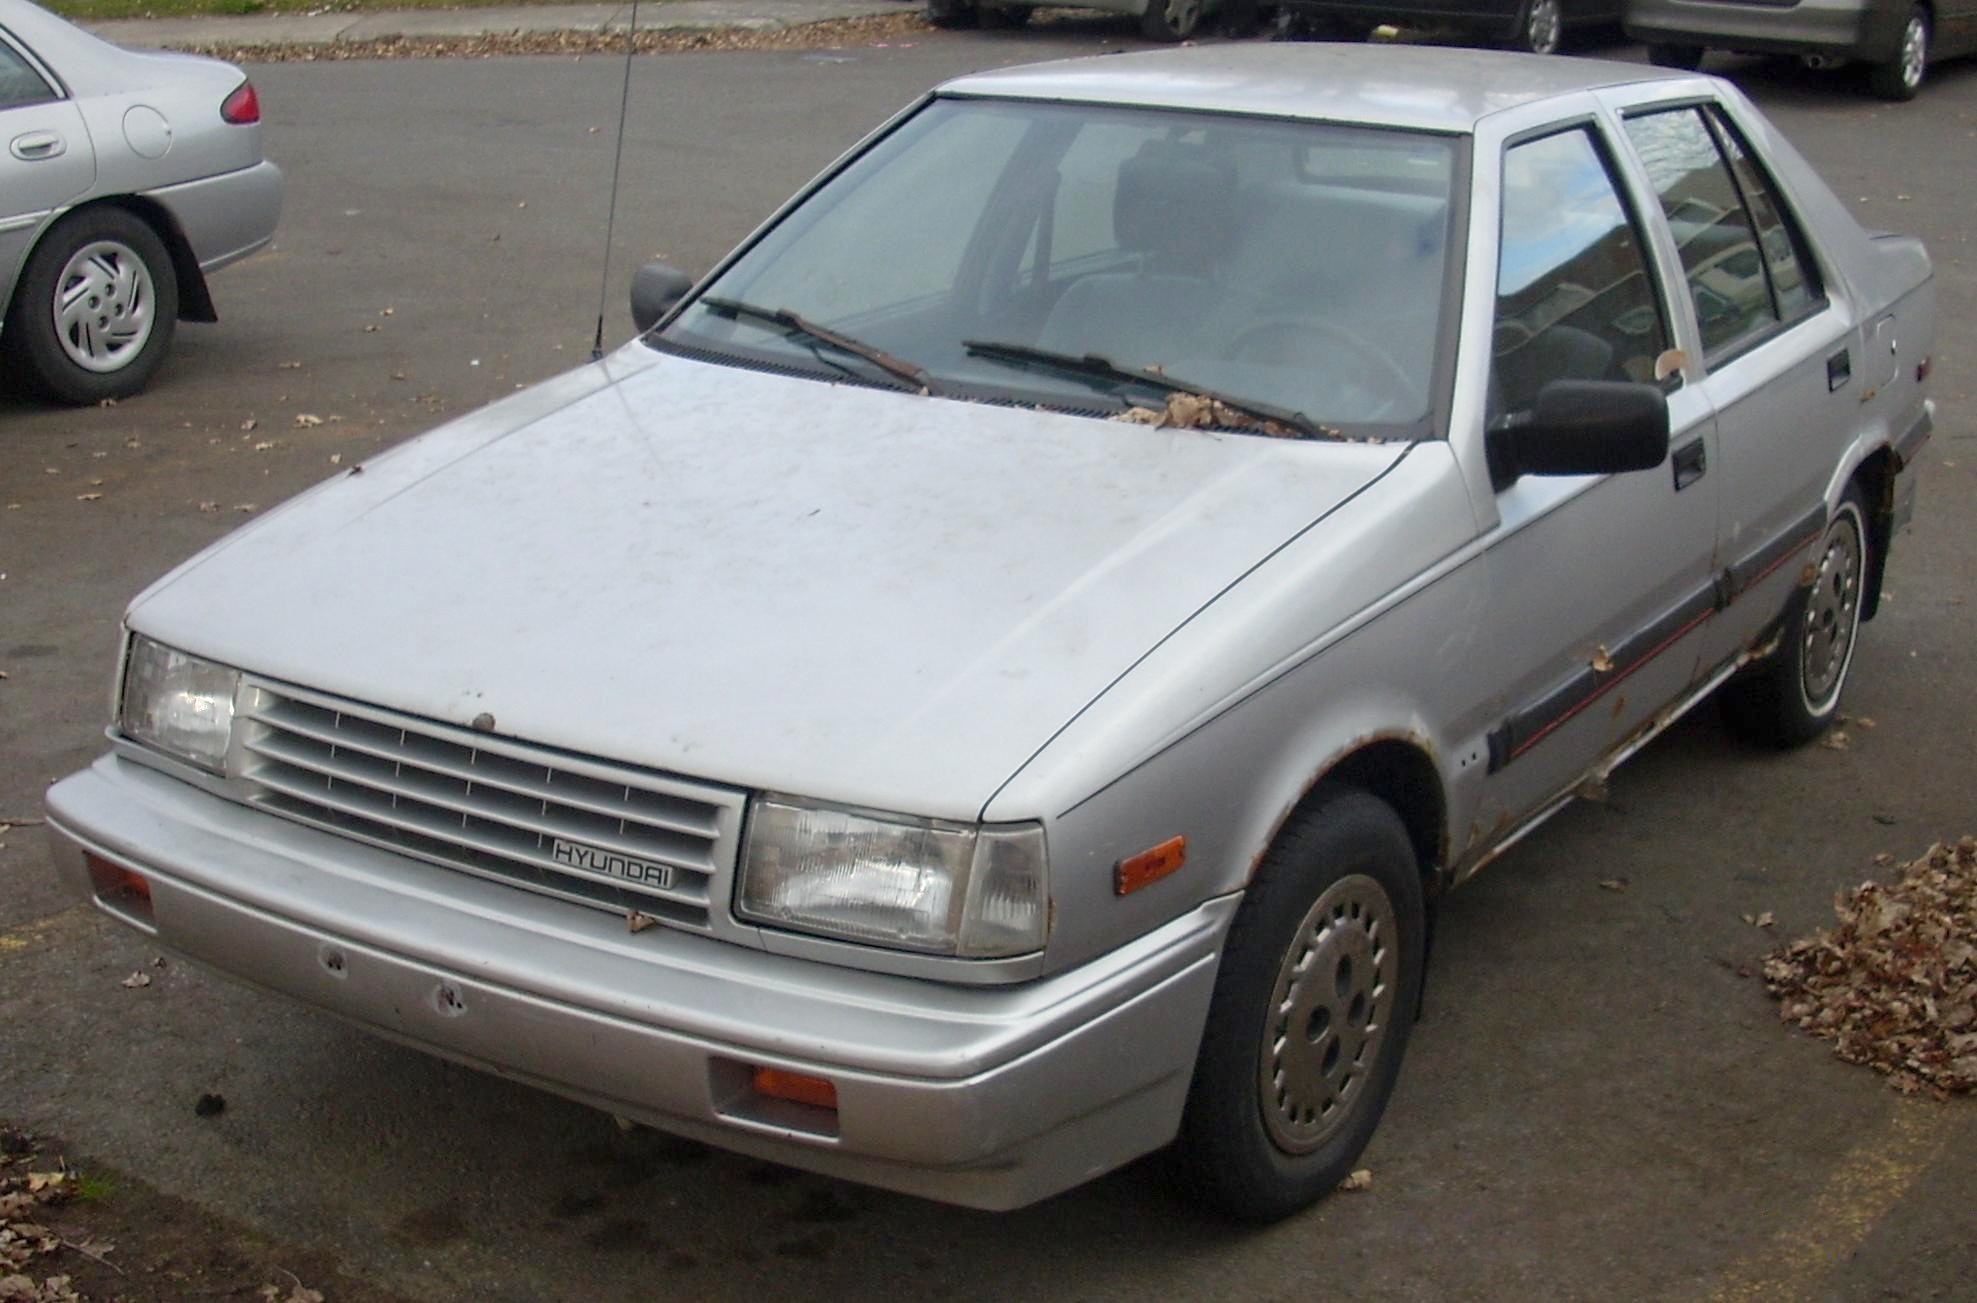 MArooned: Friday Fun Thread: Bad Foreign Cars of the 1980s